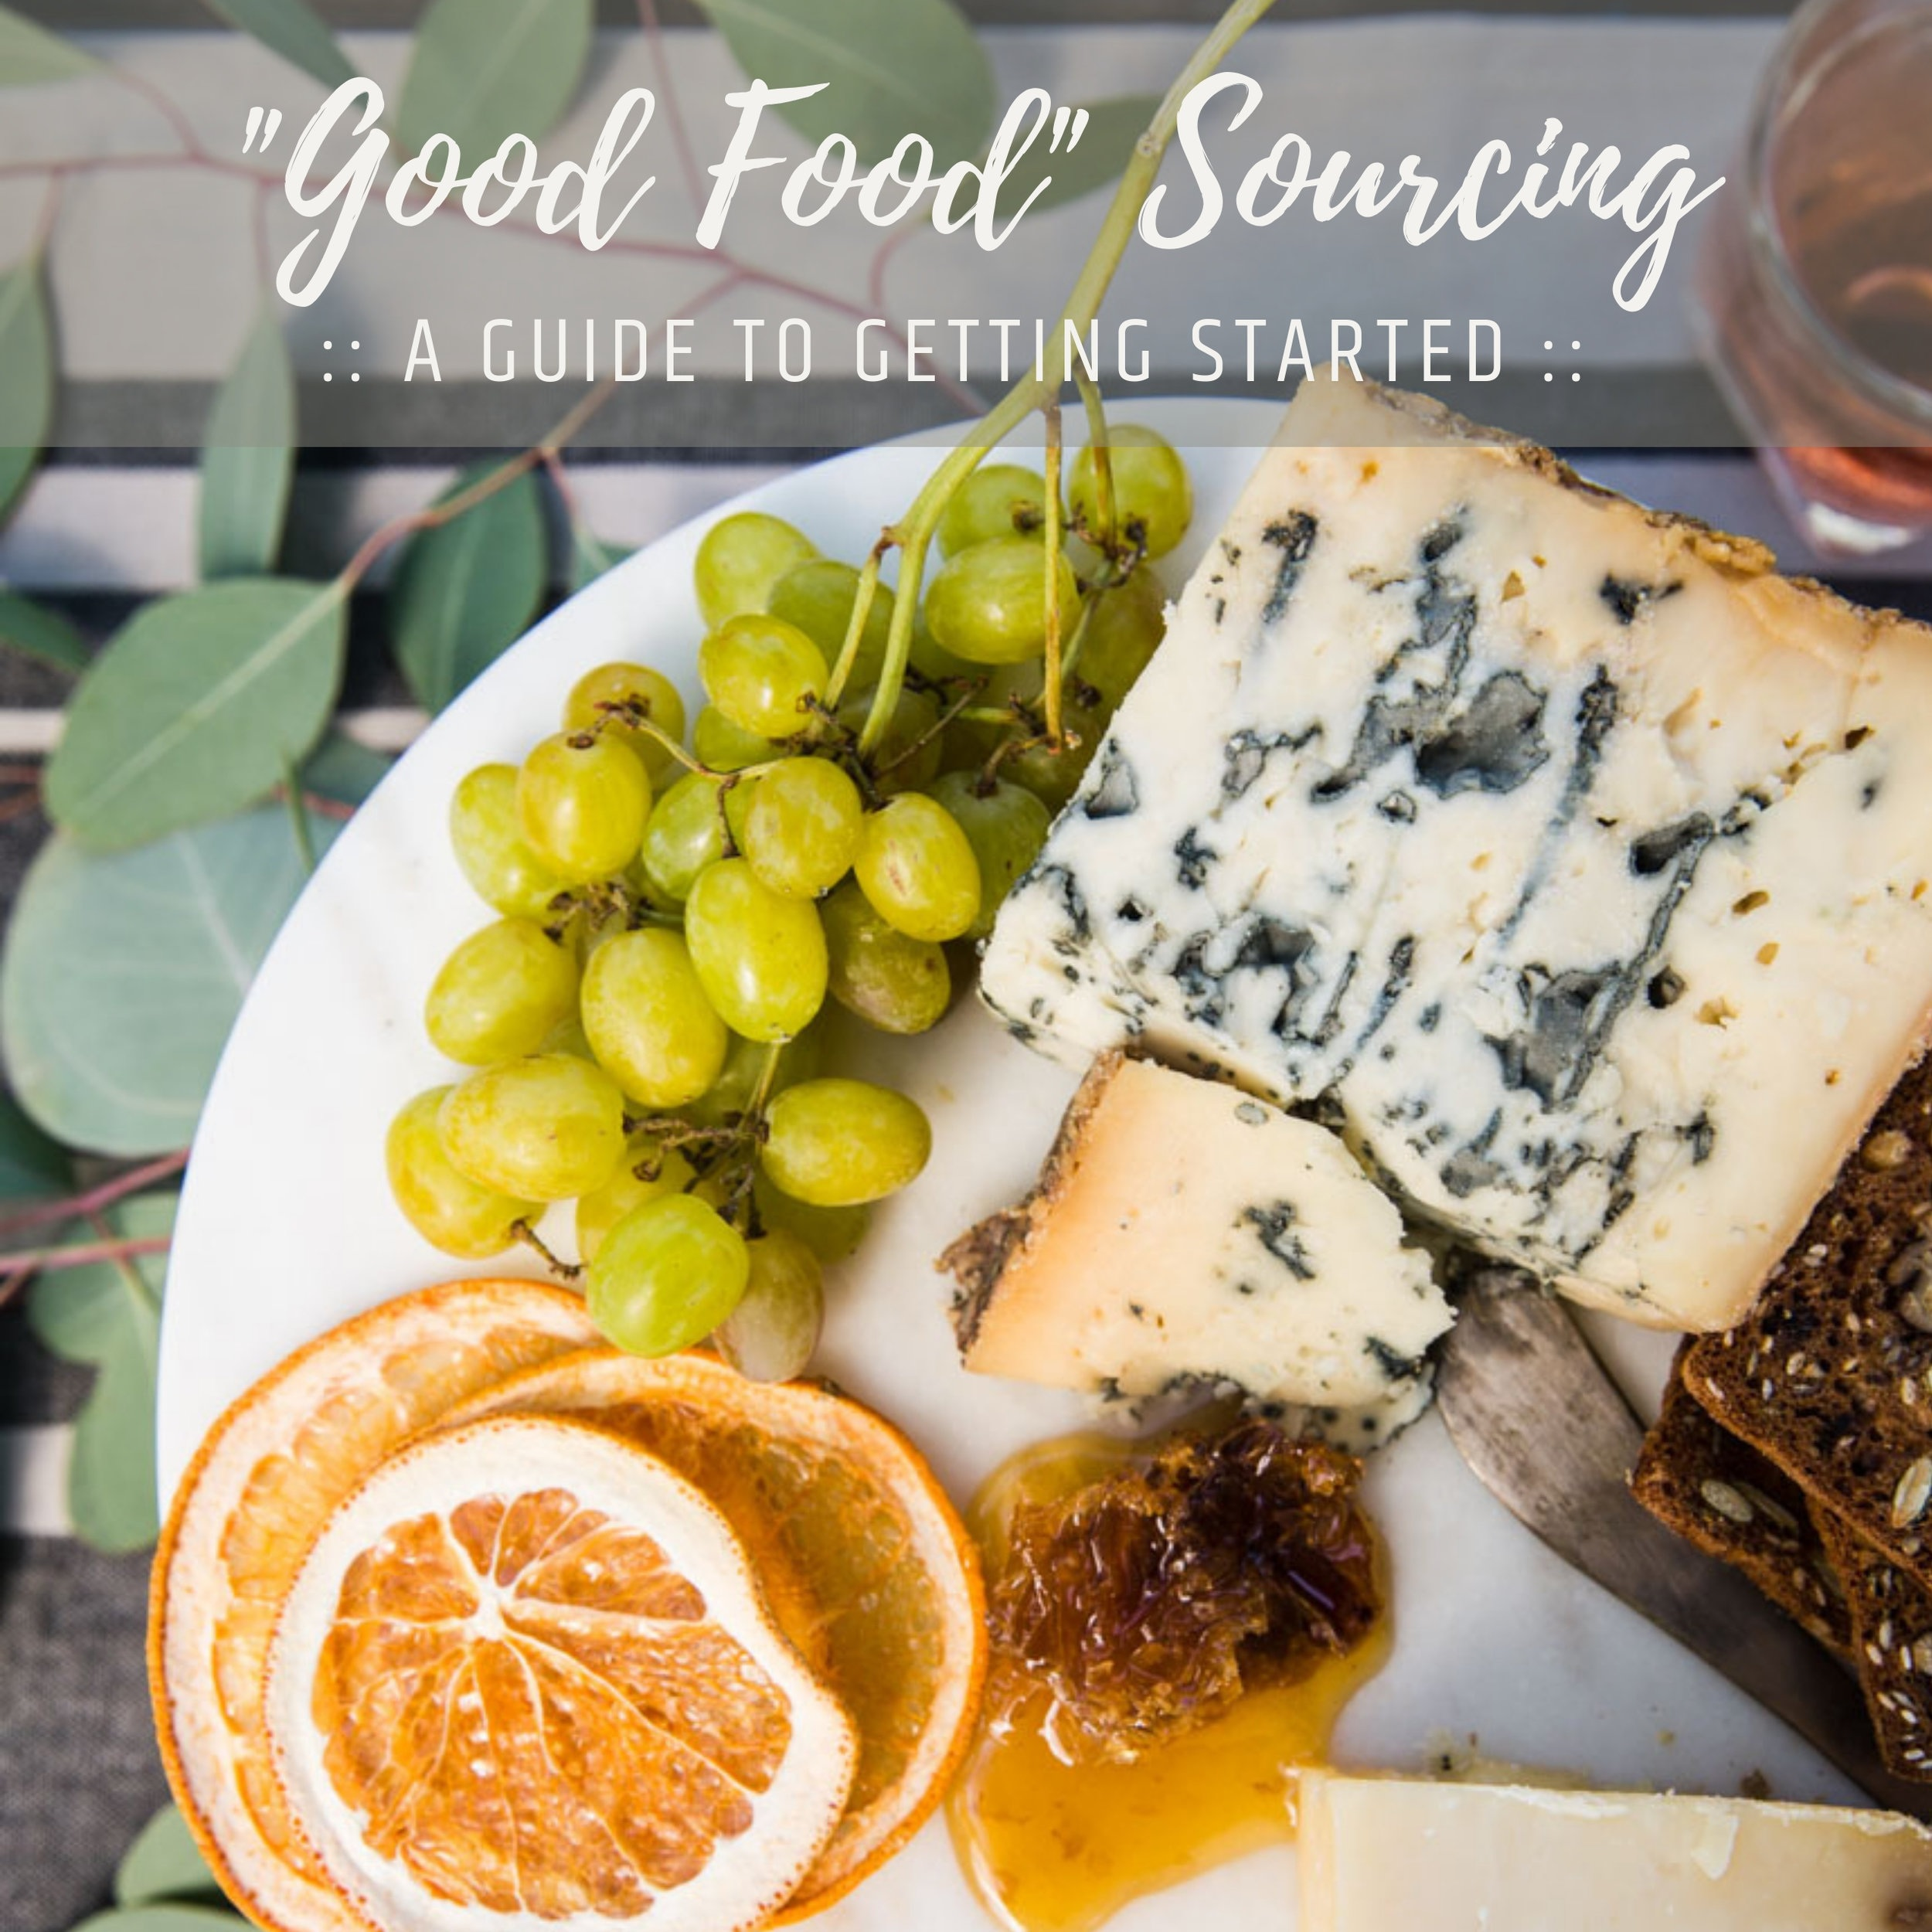 Food+Sourcing+_+A+Guide+to+Getting+Started+%281%29.jpg